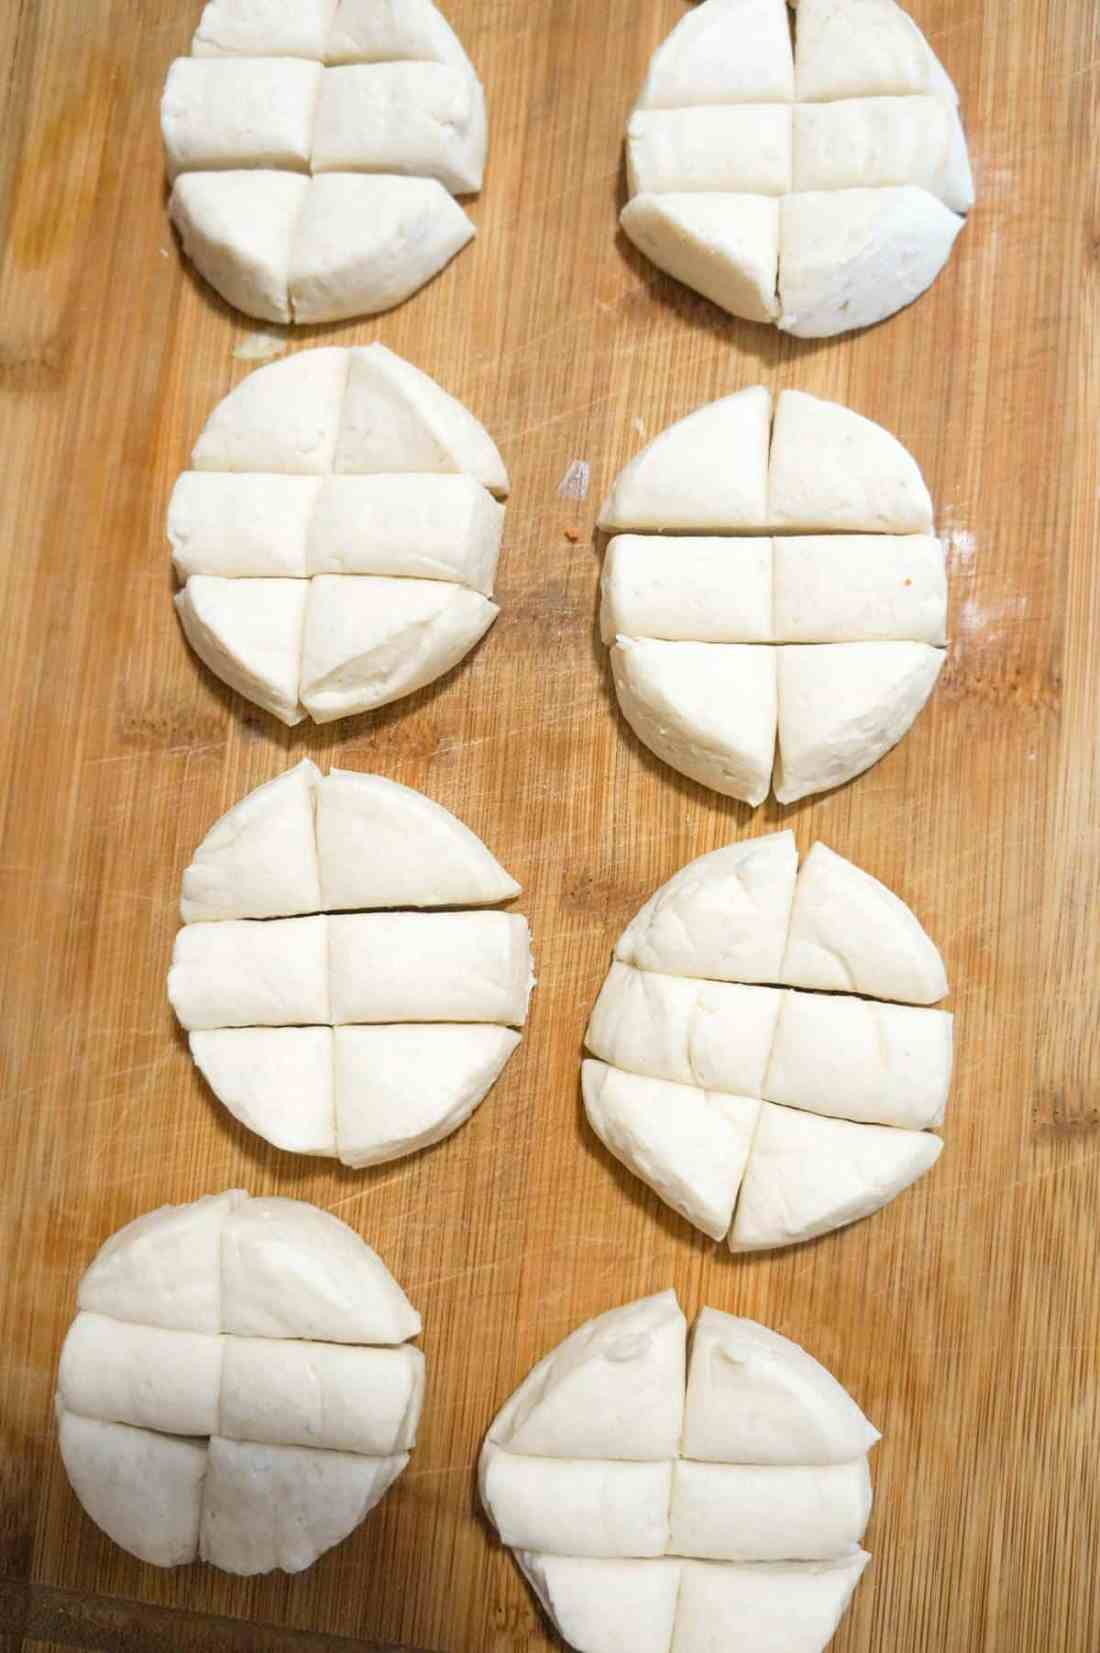 Pillsbury biscuits cut into six pieces each